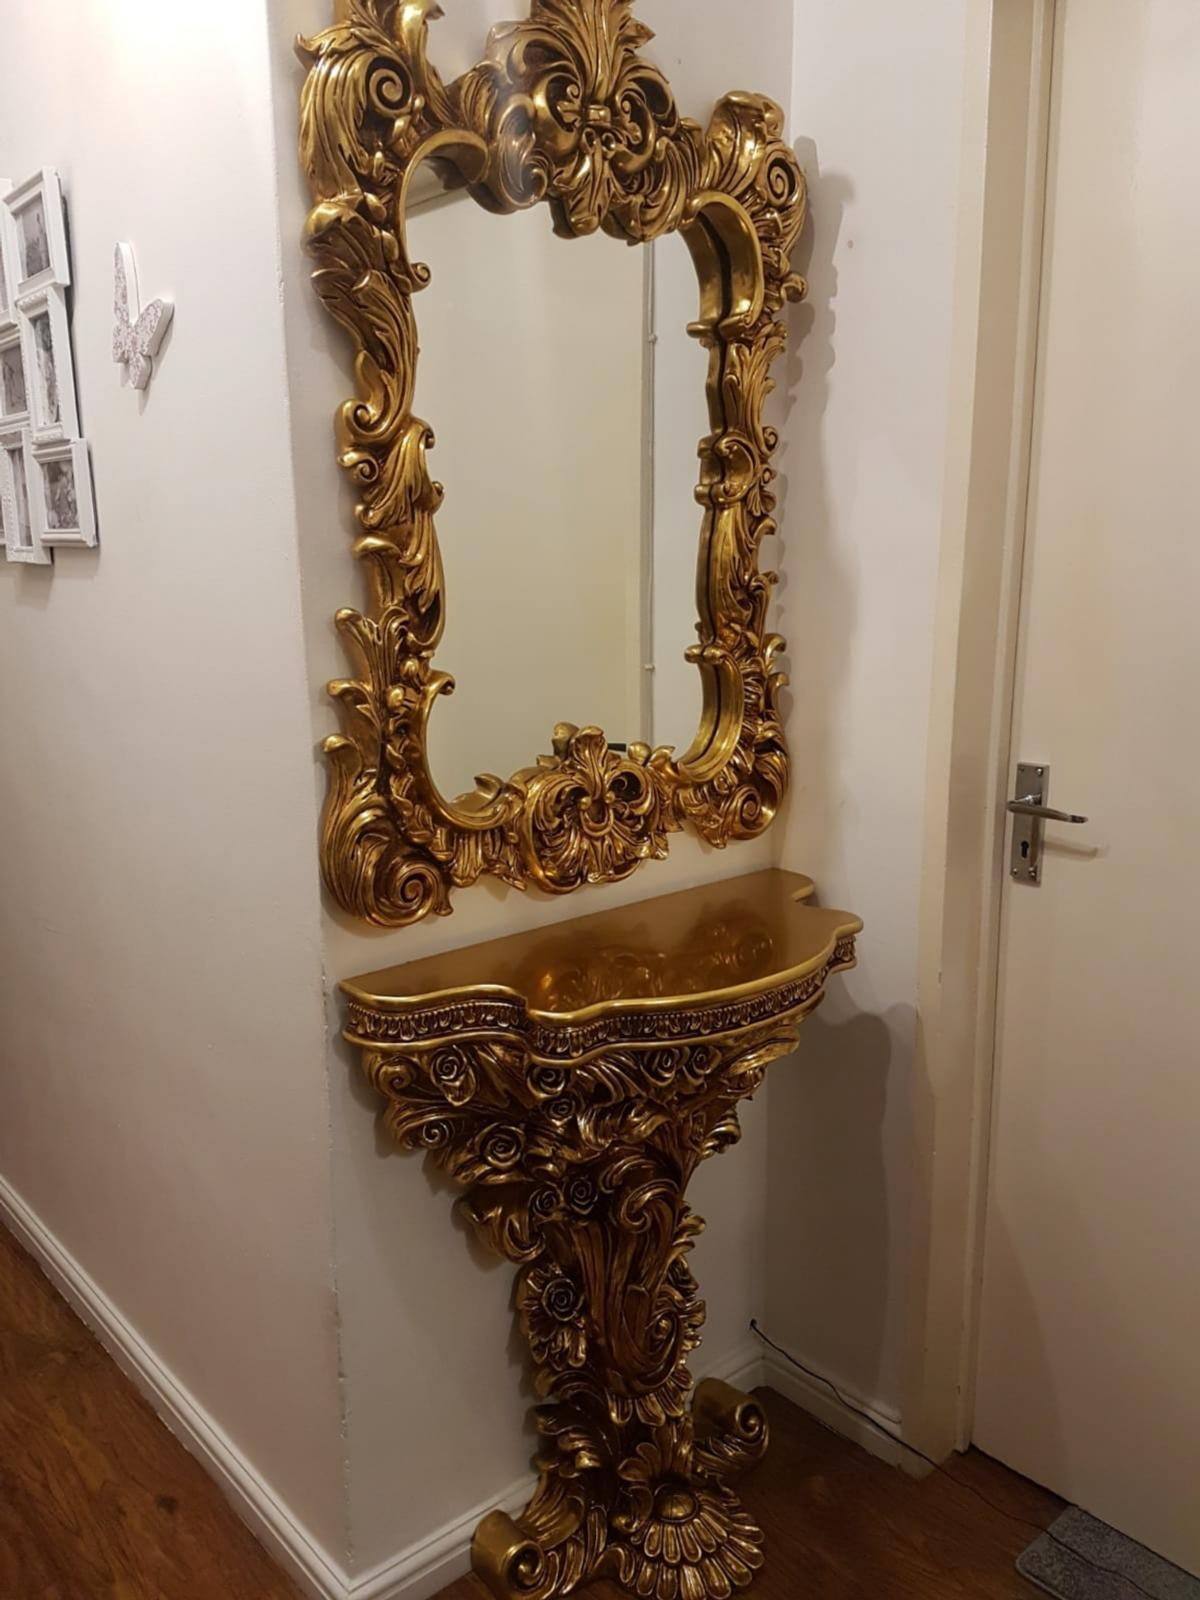 Gold Ornate Console Table And Mirror In Nw1 London For 250 00 For Sale Shpock